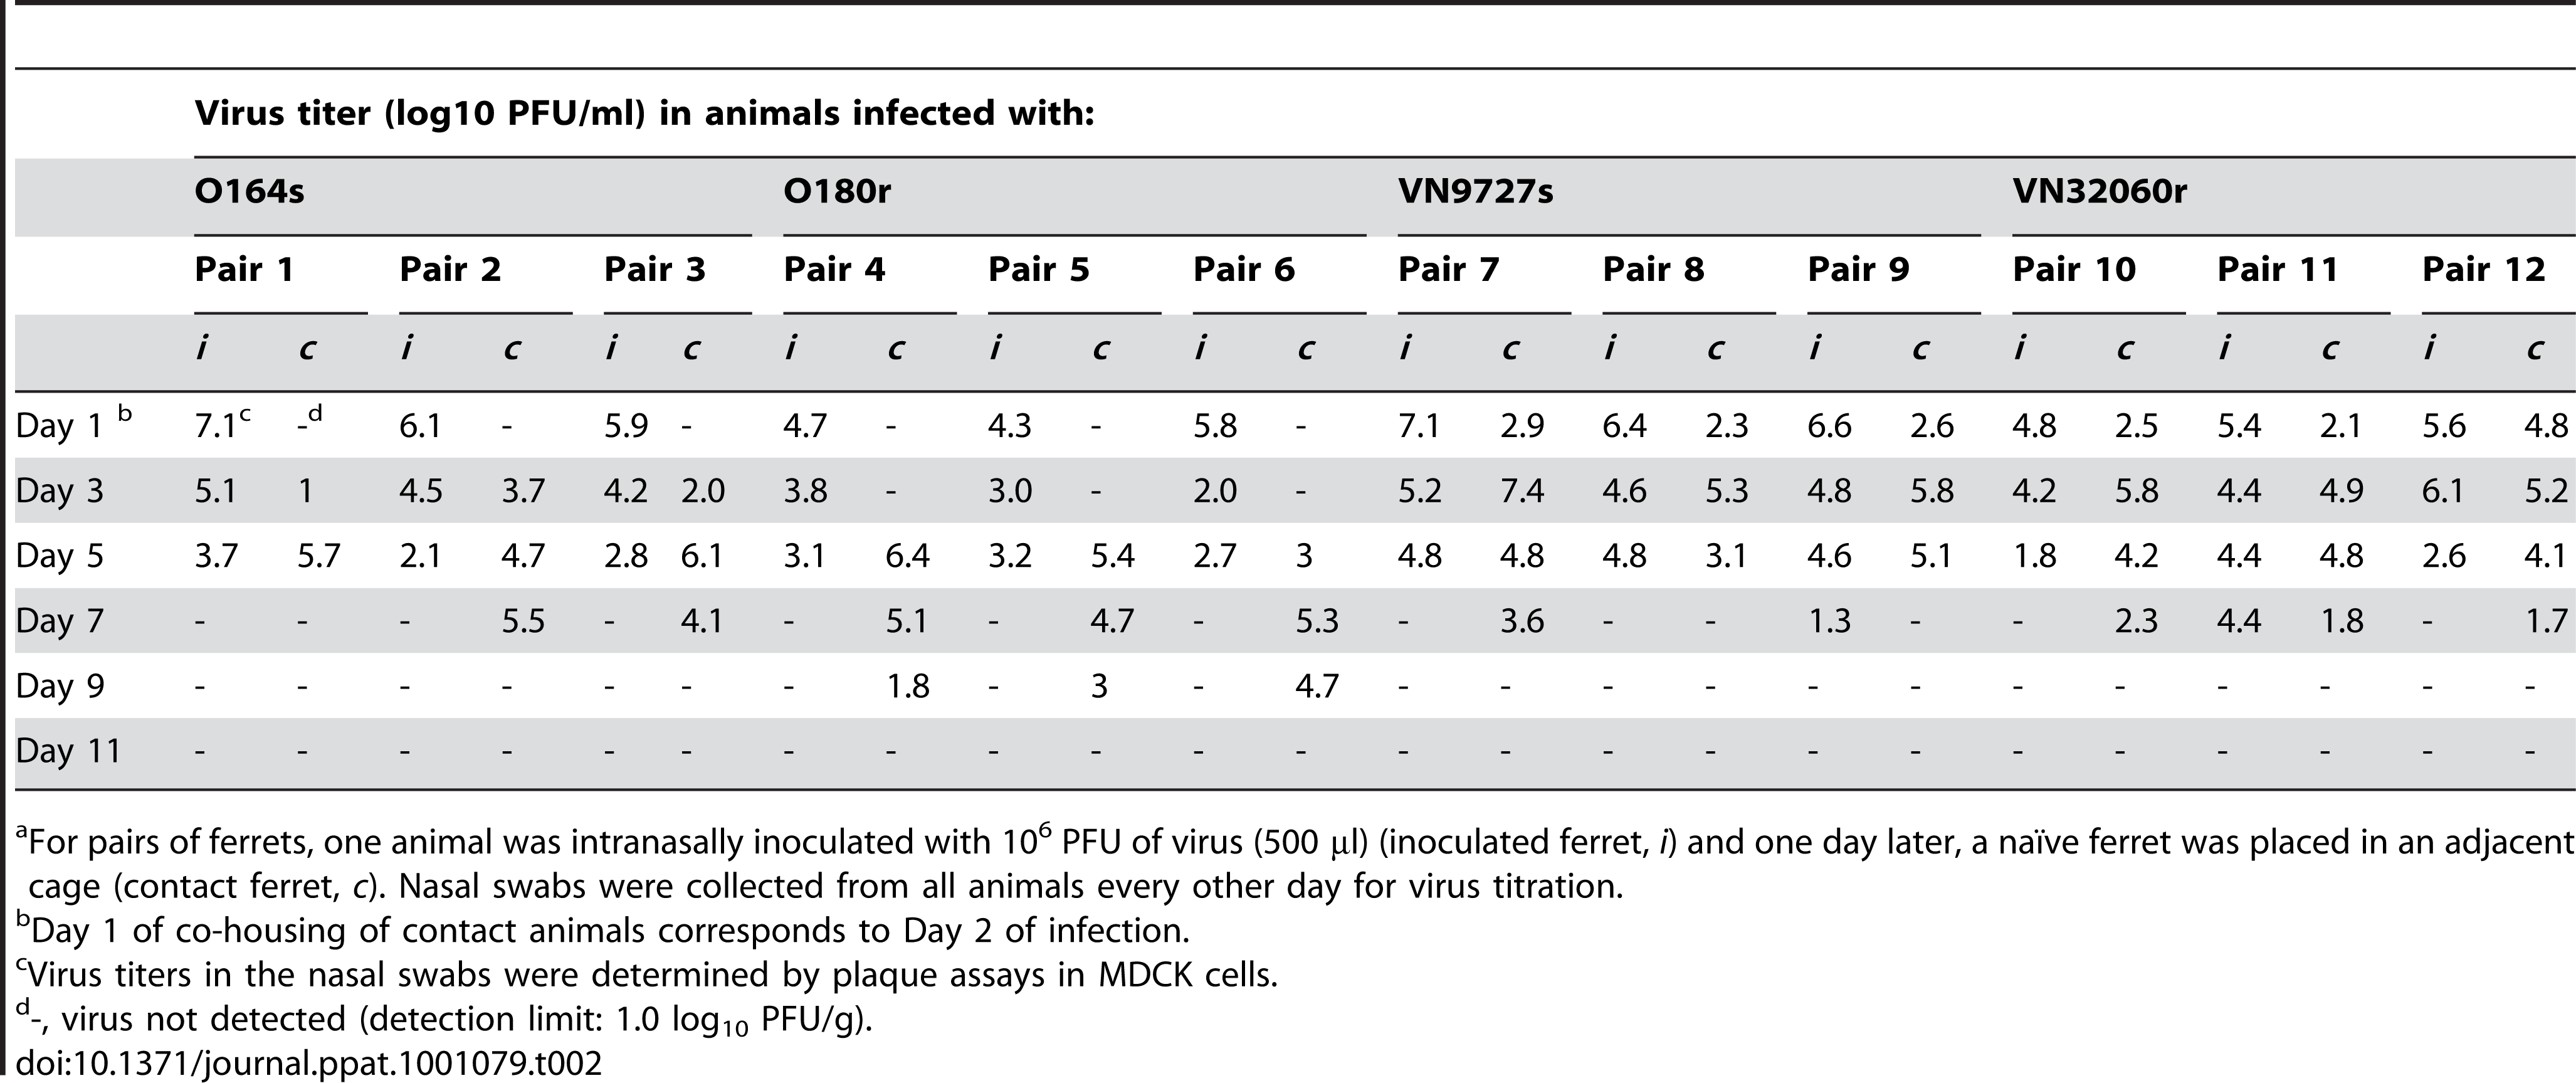 Virus titers in the nasal swabs of inoculated and contact ferrets<em class=&quot;ref&quot;>a</em>.